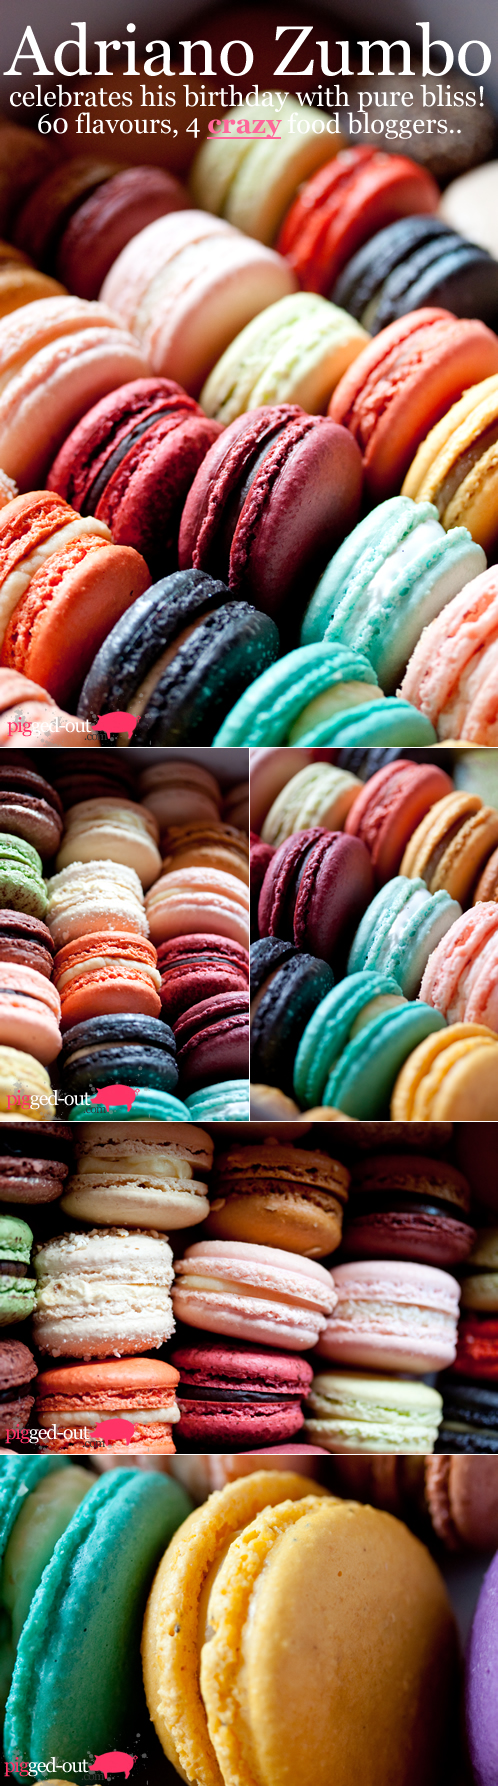 Flavors of Macaroons By Adriano Zumbo